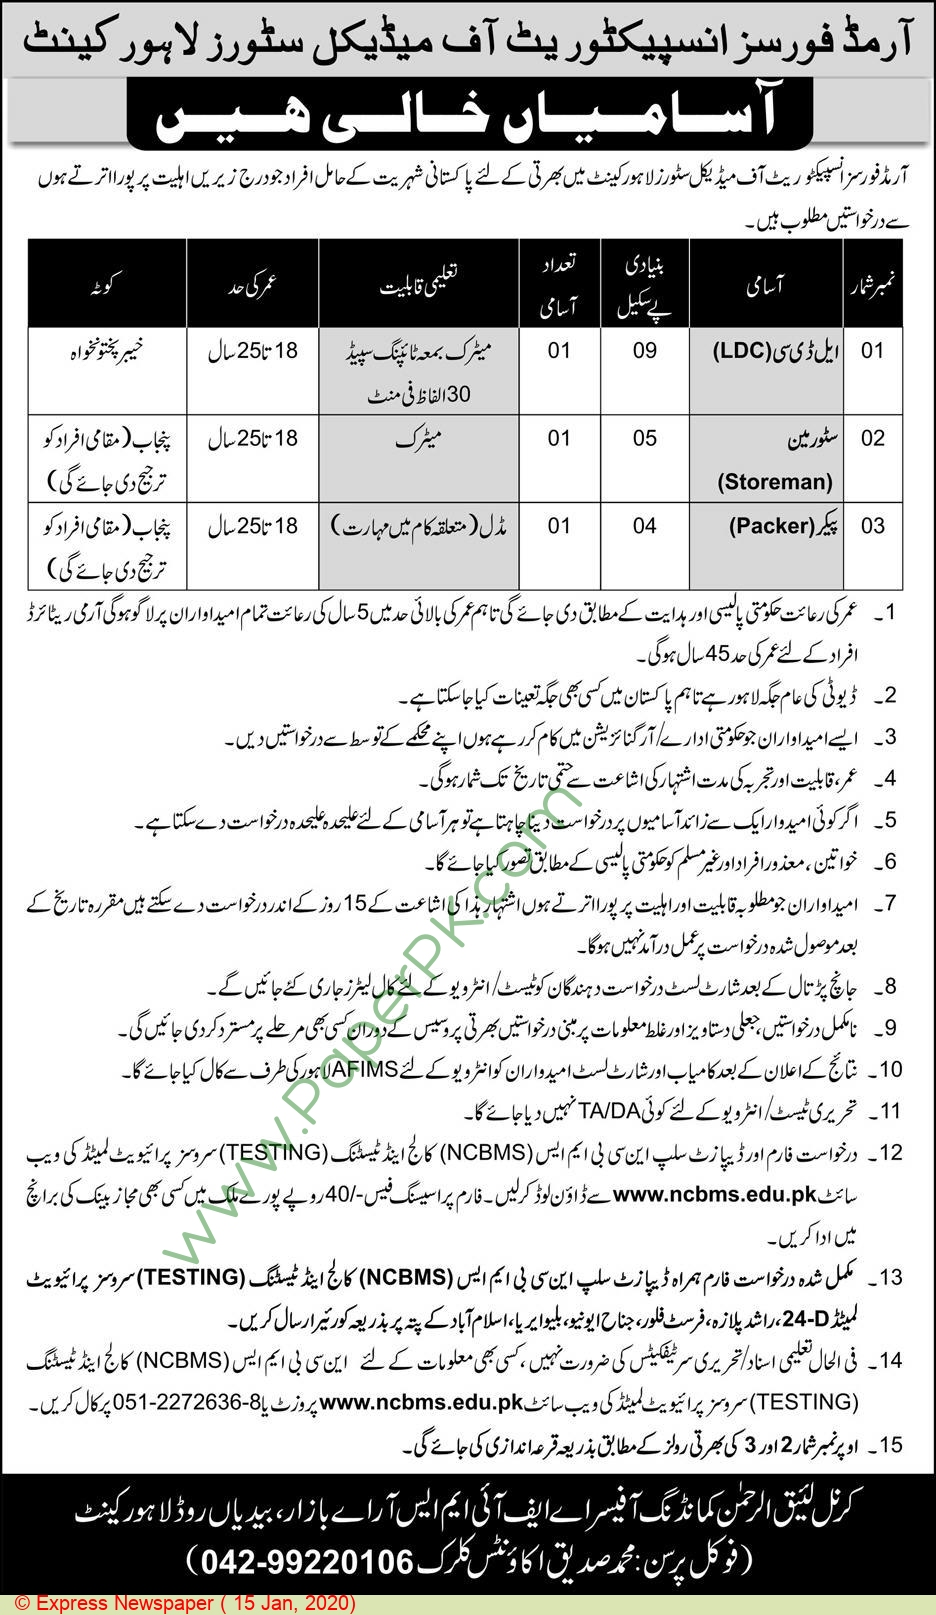 Armed Forces Inspectorate Of Medical Stores jobs newspaper ad for Packer in Lahore